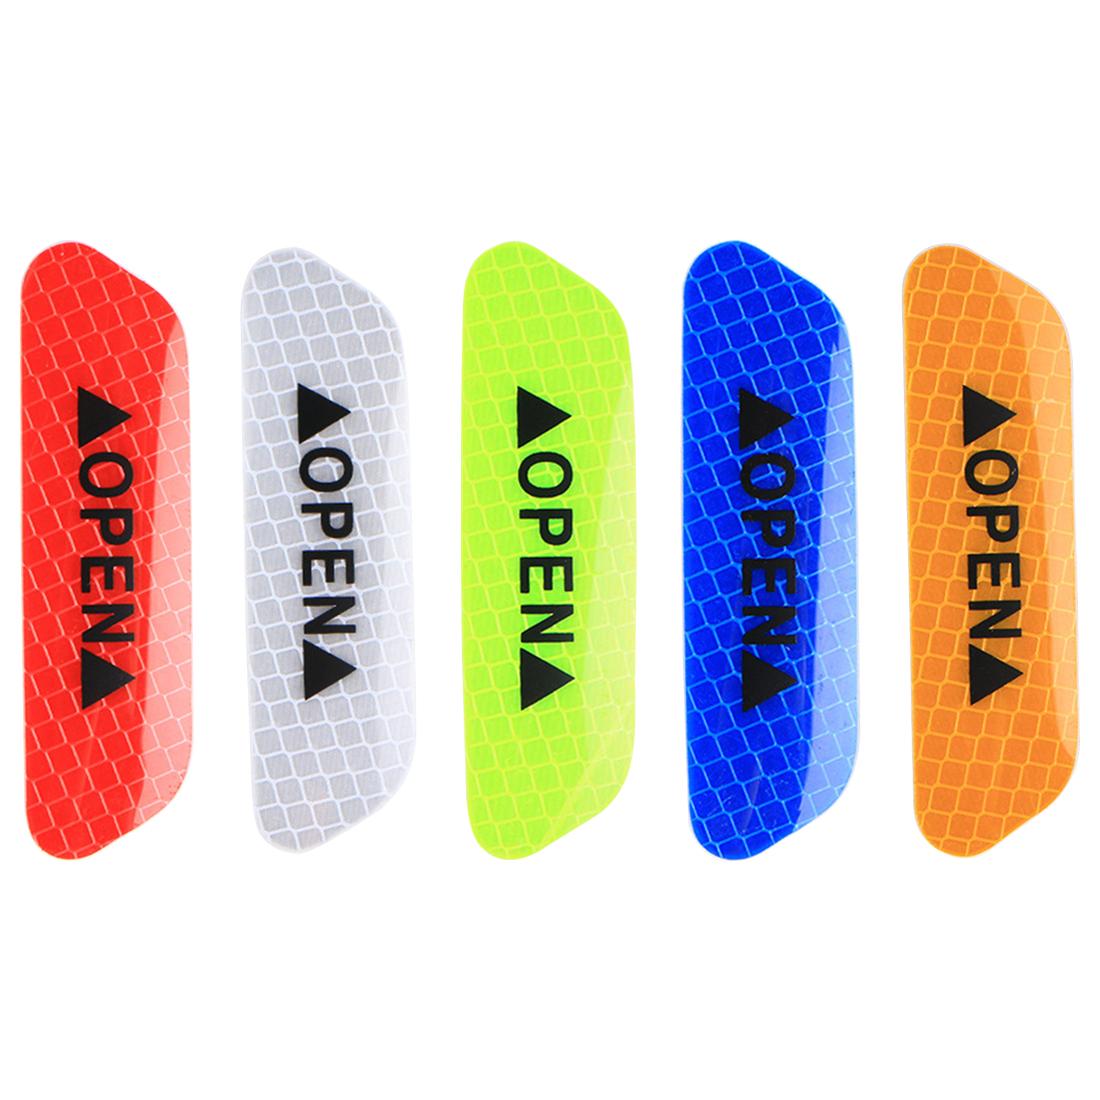 Hot Sale Warning Mark Reflective Tape Universal Exterior Accessories Car Door Stickers OPEN Sign Safety Reflective Strips 4Pcs